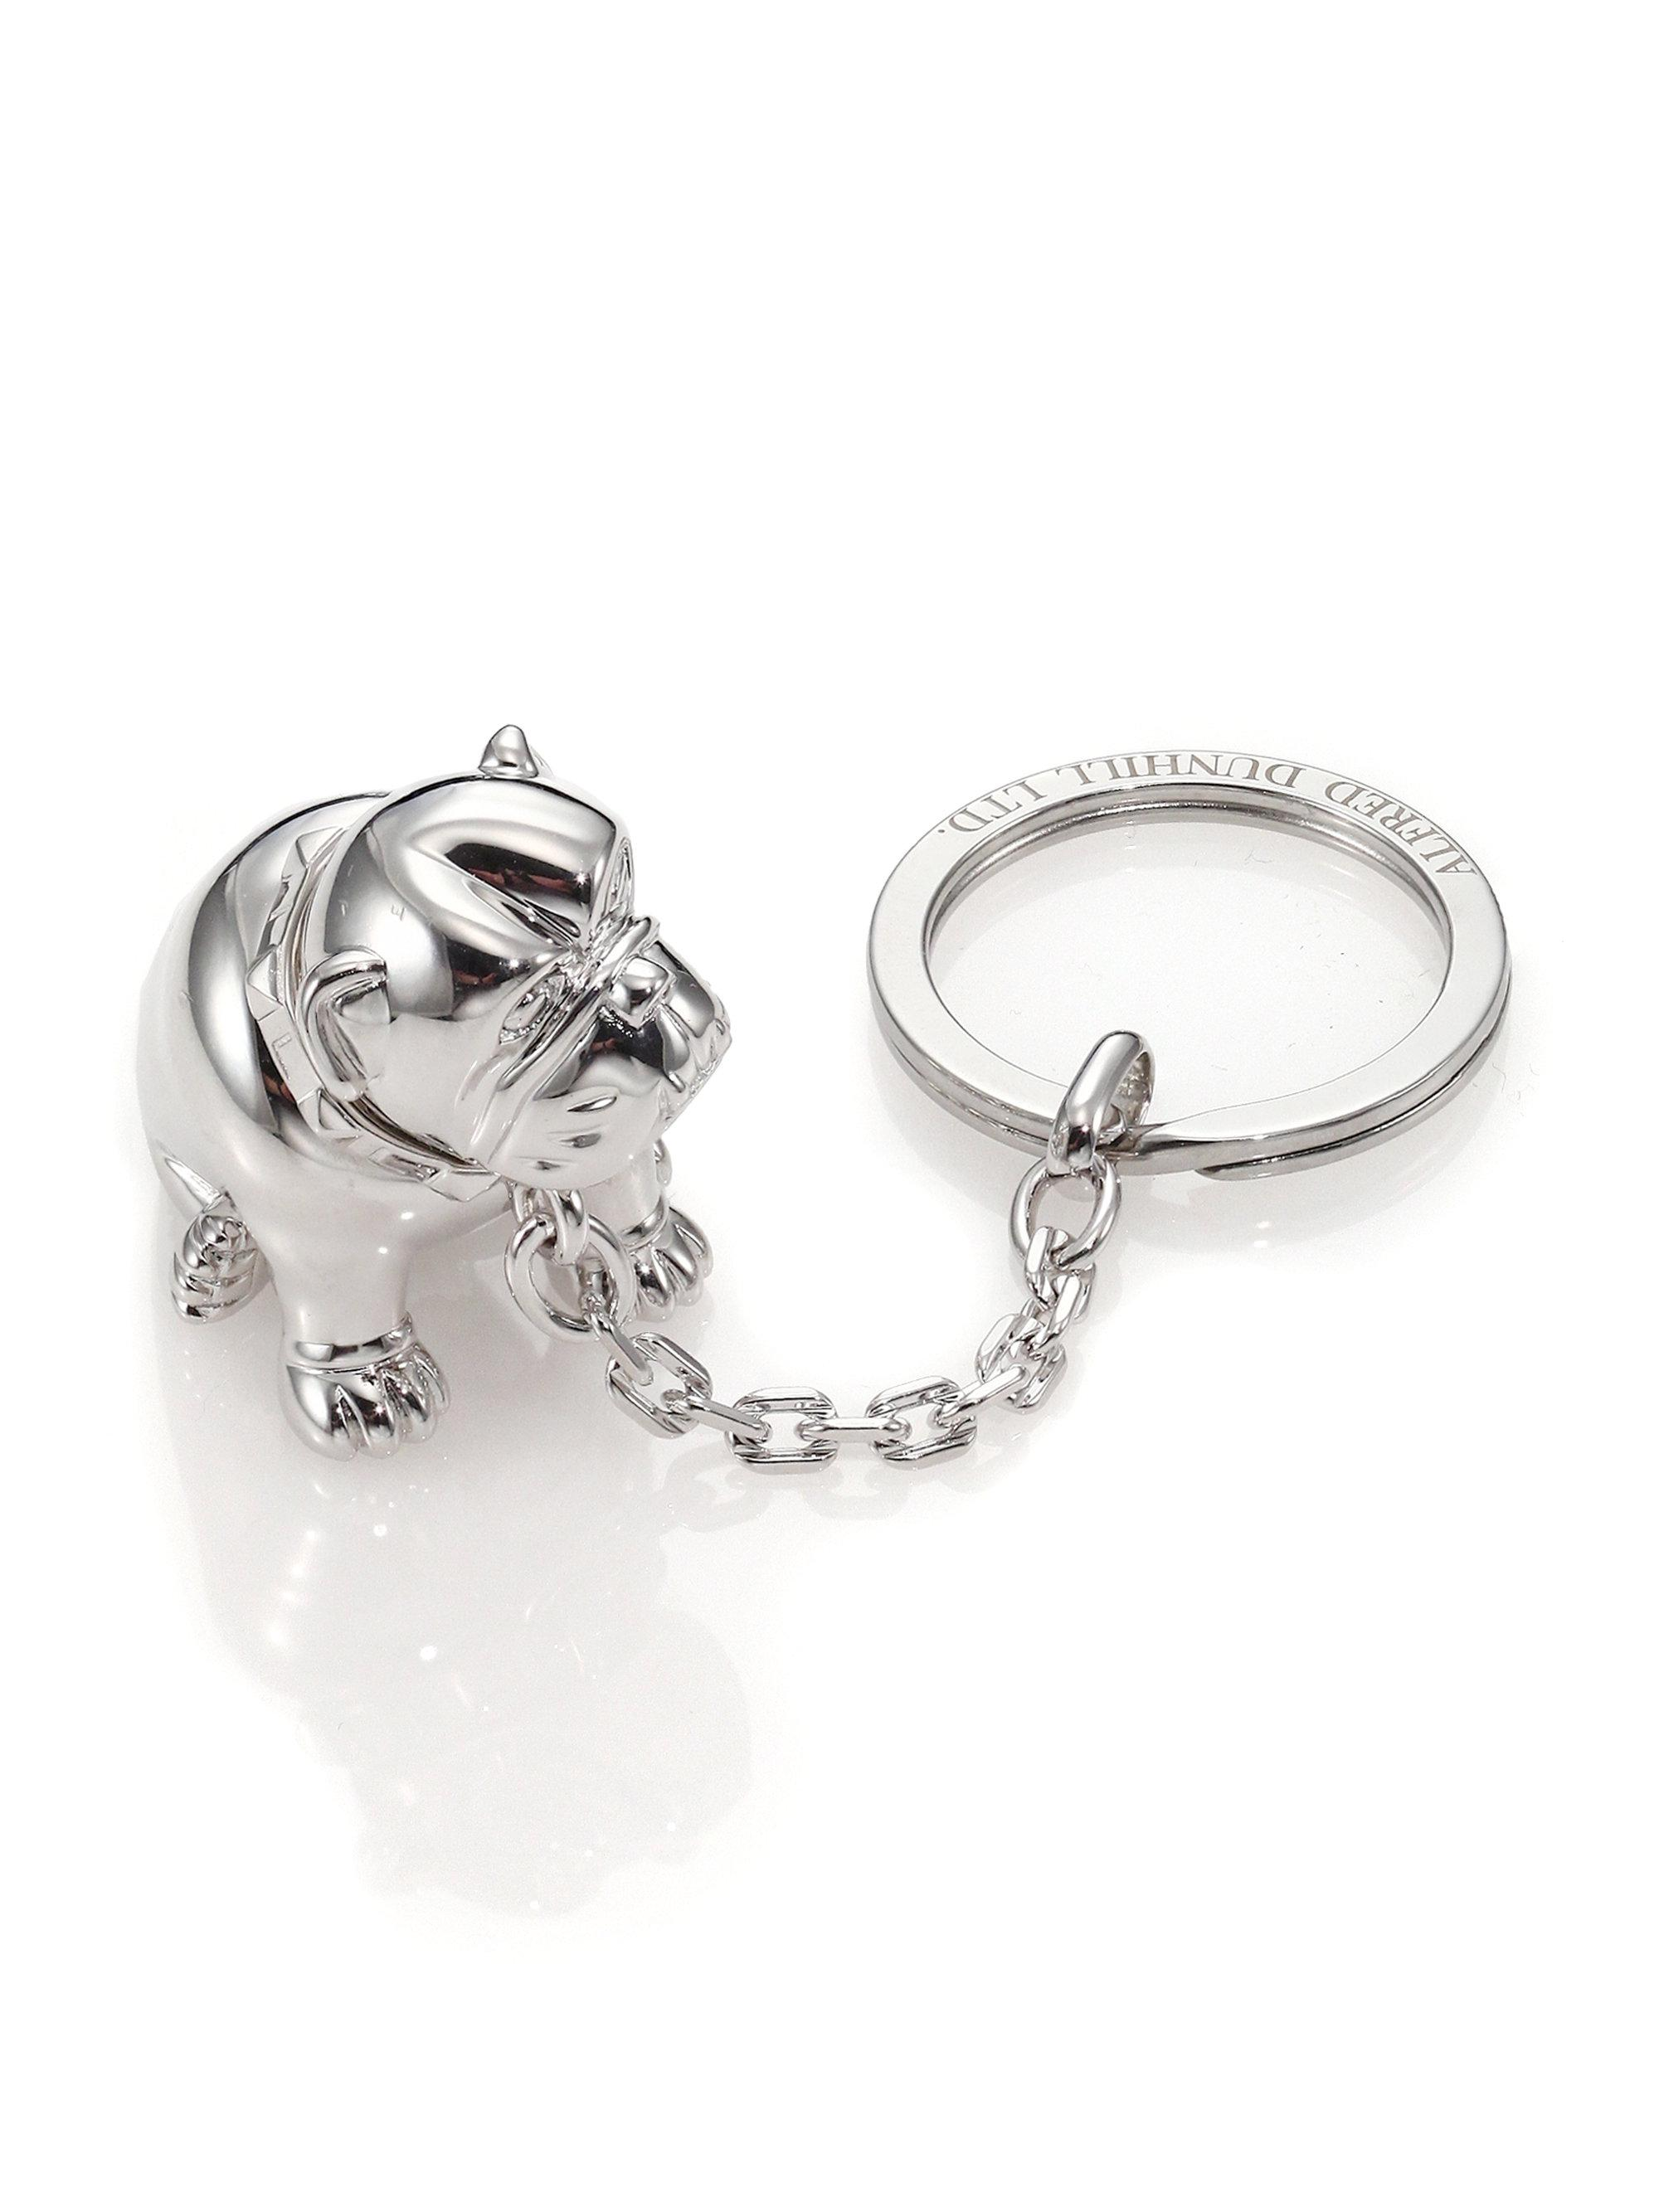 9c51bd71899 Dunhill Palladium-plated Bulldog Key Chain With Rotating Detail in ...